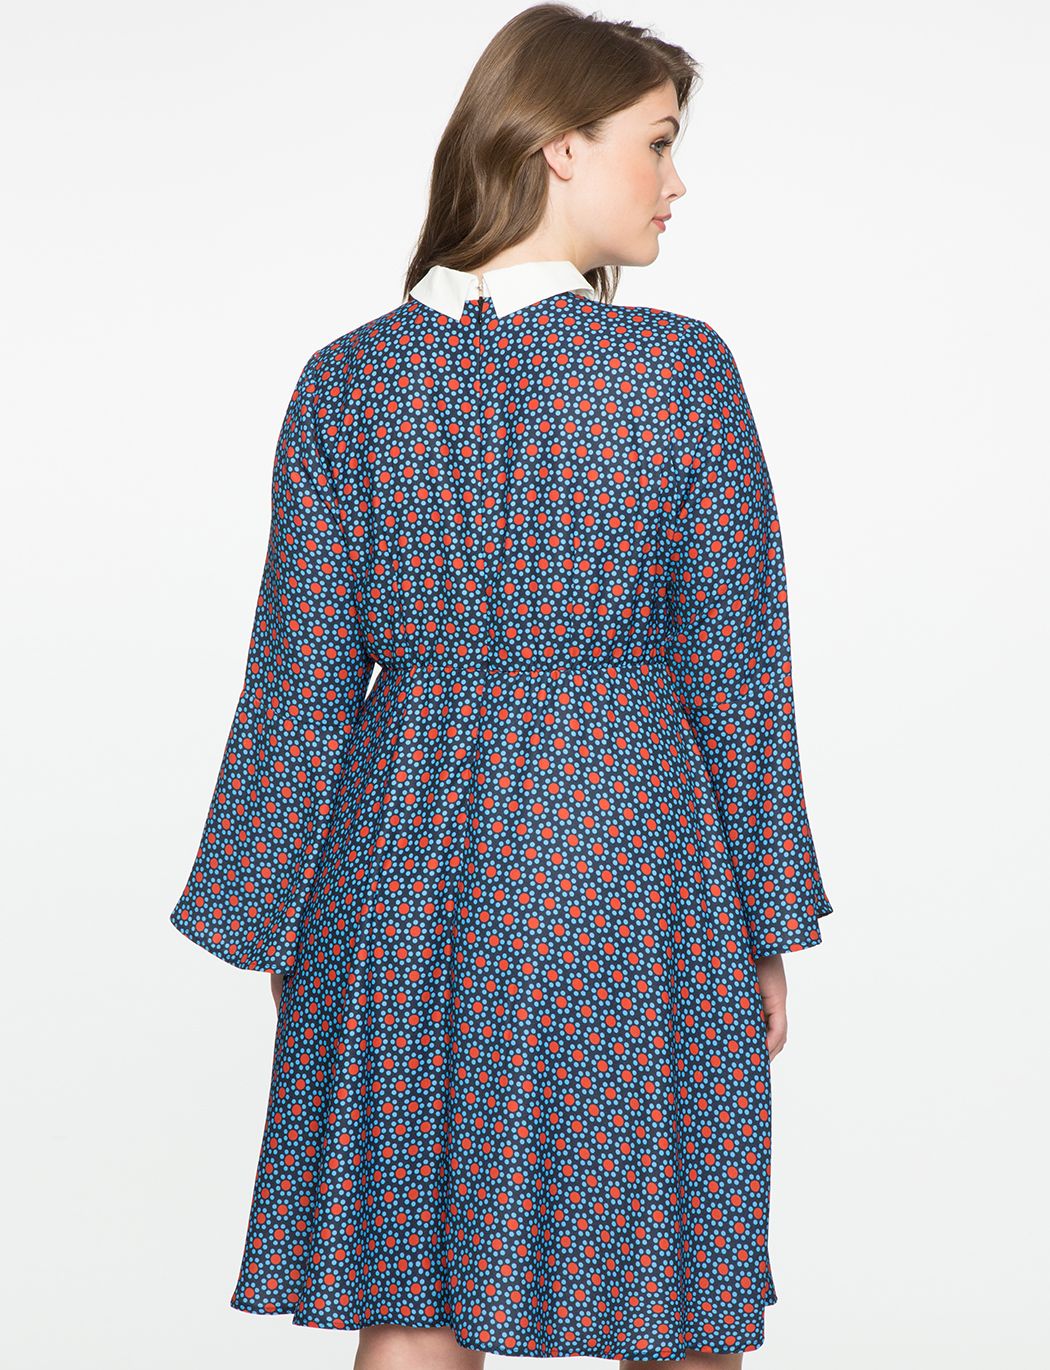 Trumpet Sleeve Fit and Flare Dress